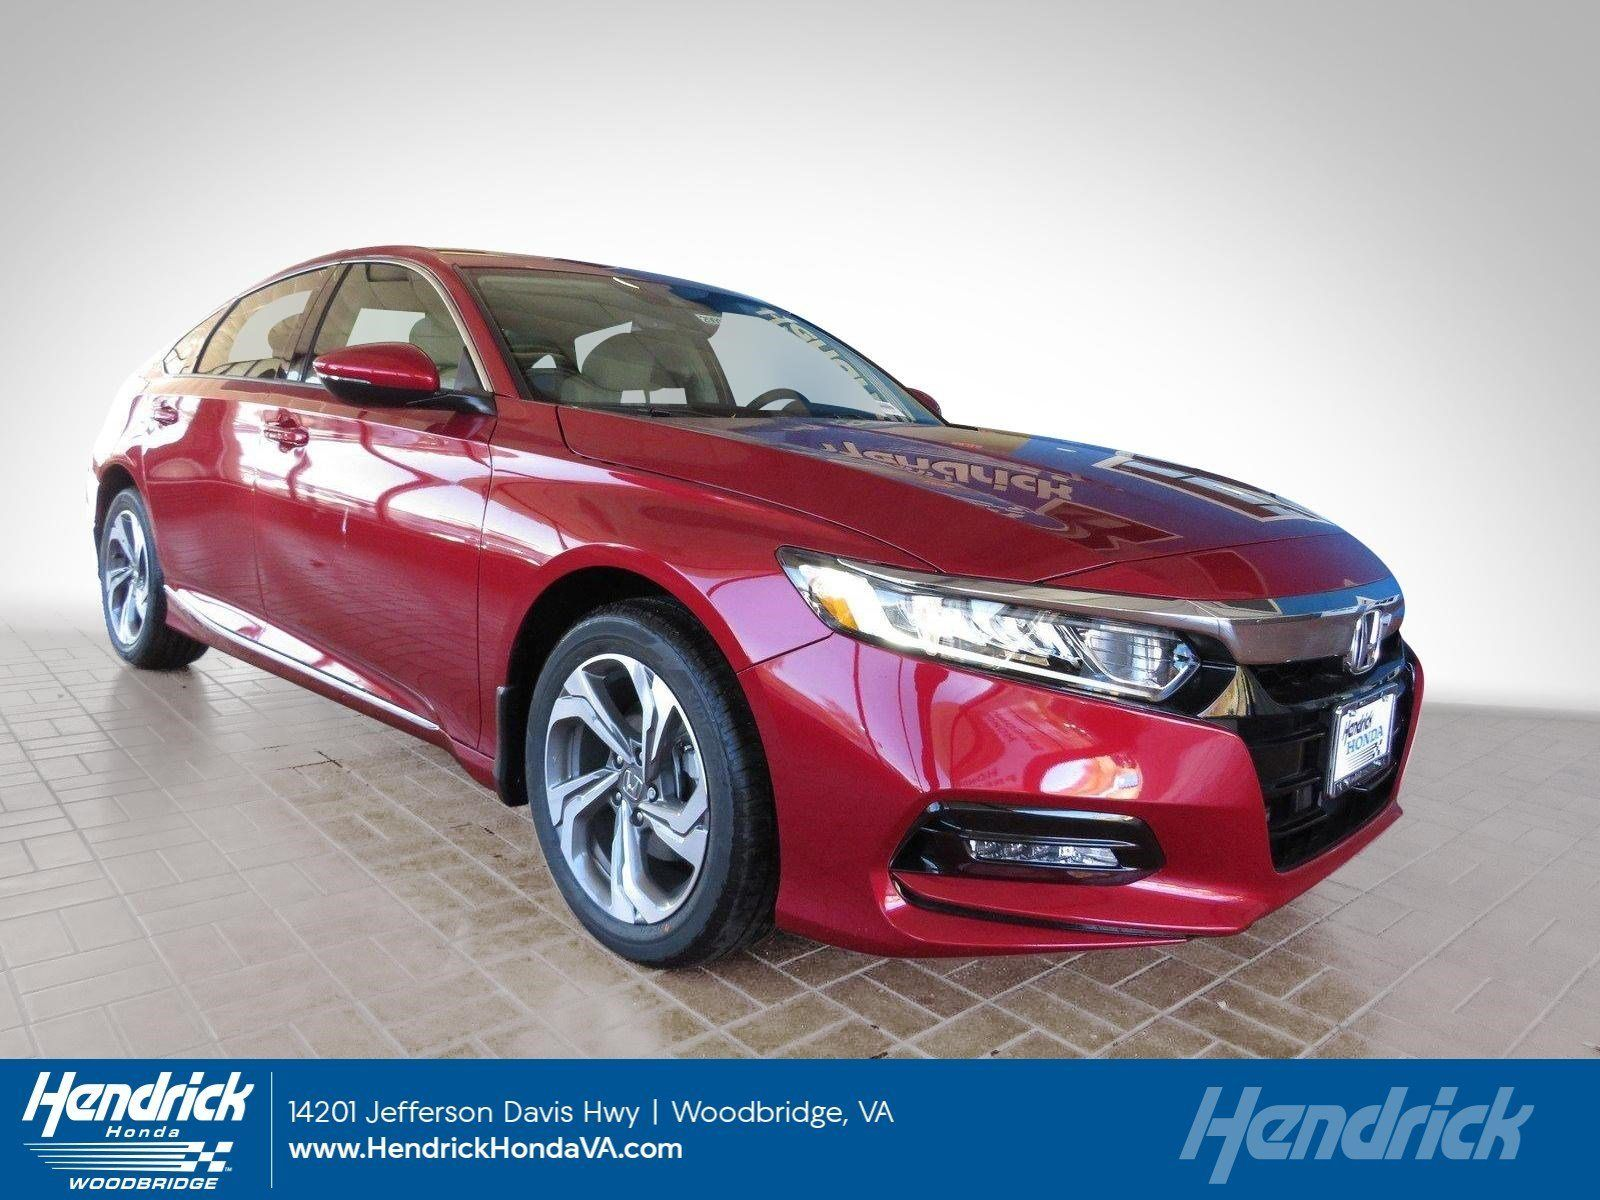 2020 Honda Accord Coupe Sedan Interior In 2020 Honda Accord Coupe Accord Coupe Honda Accord